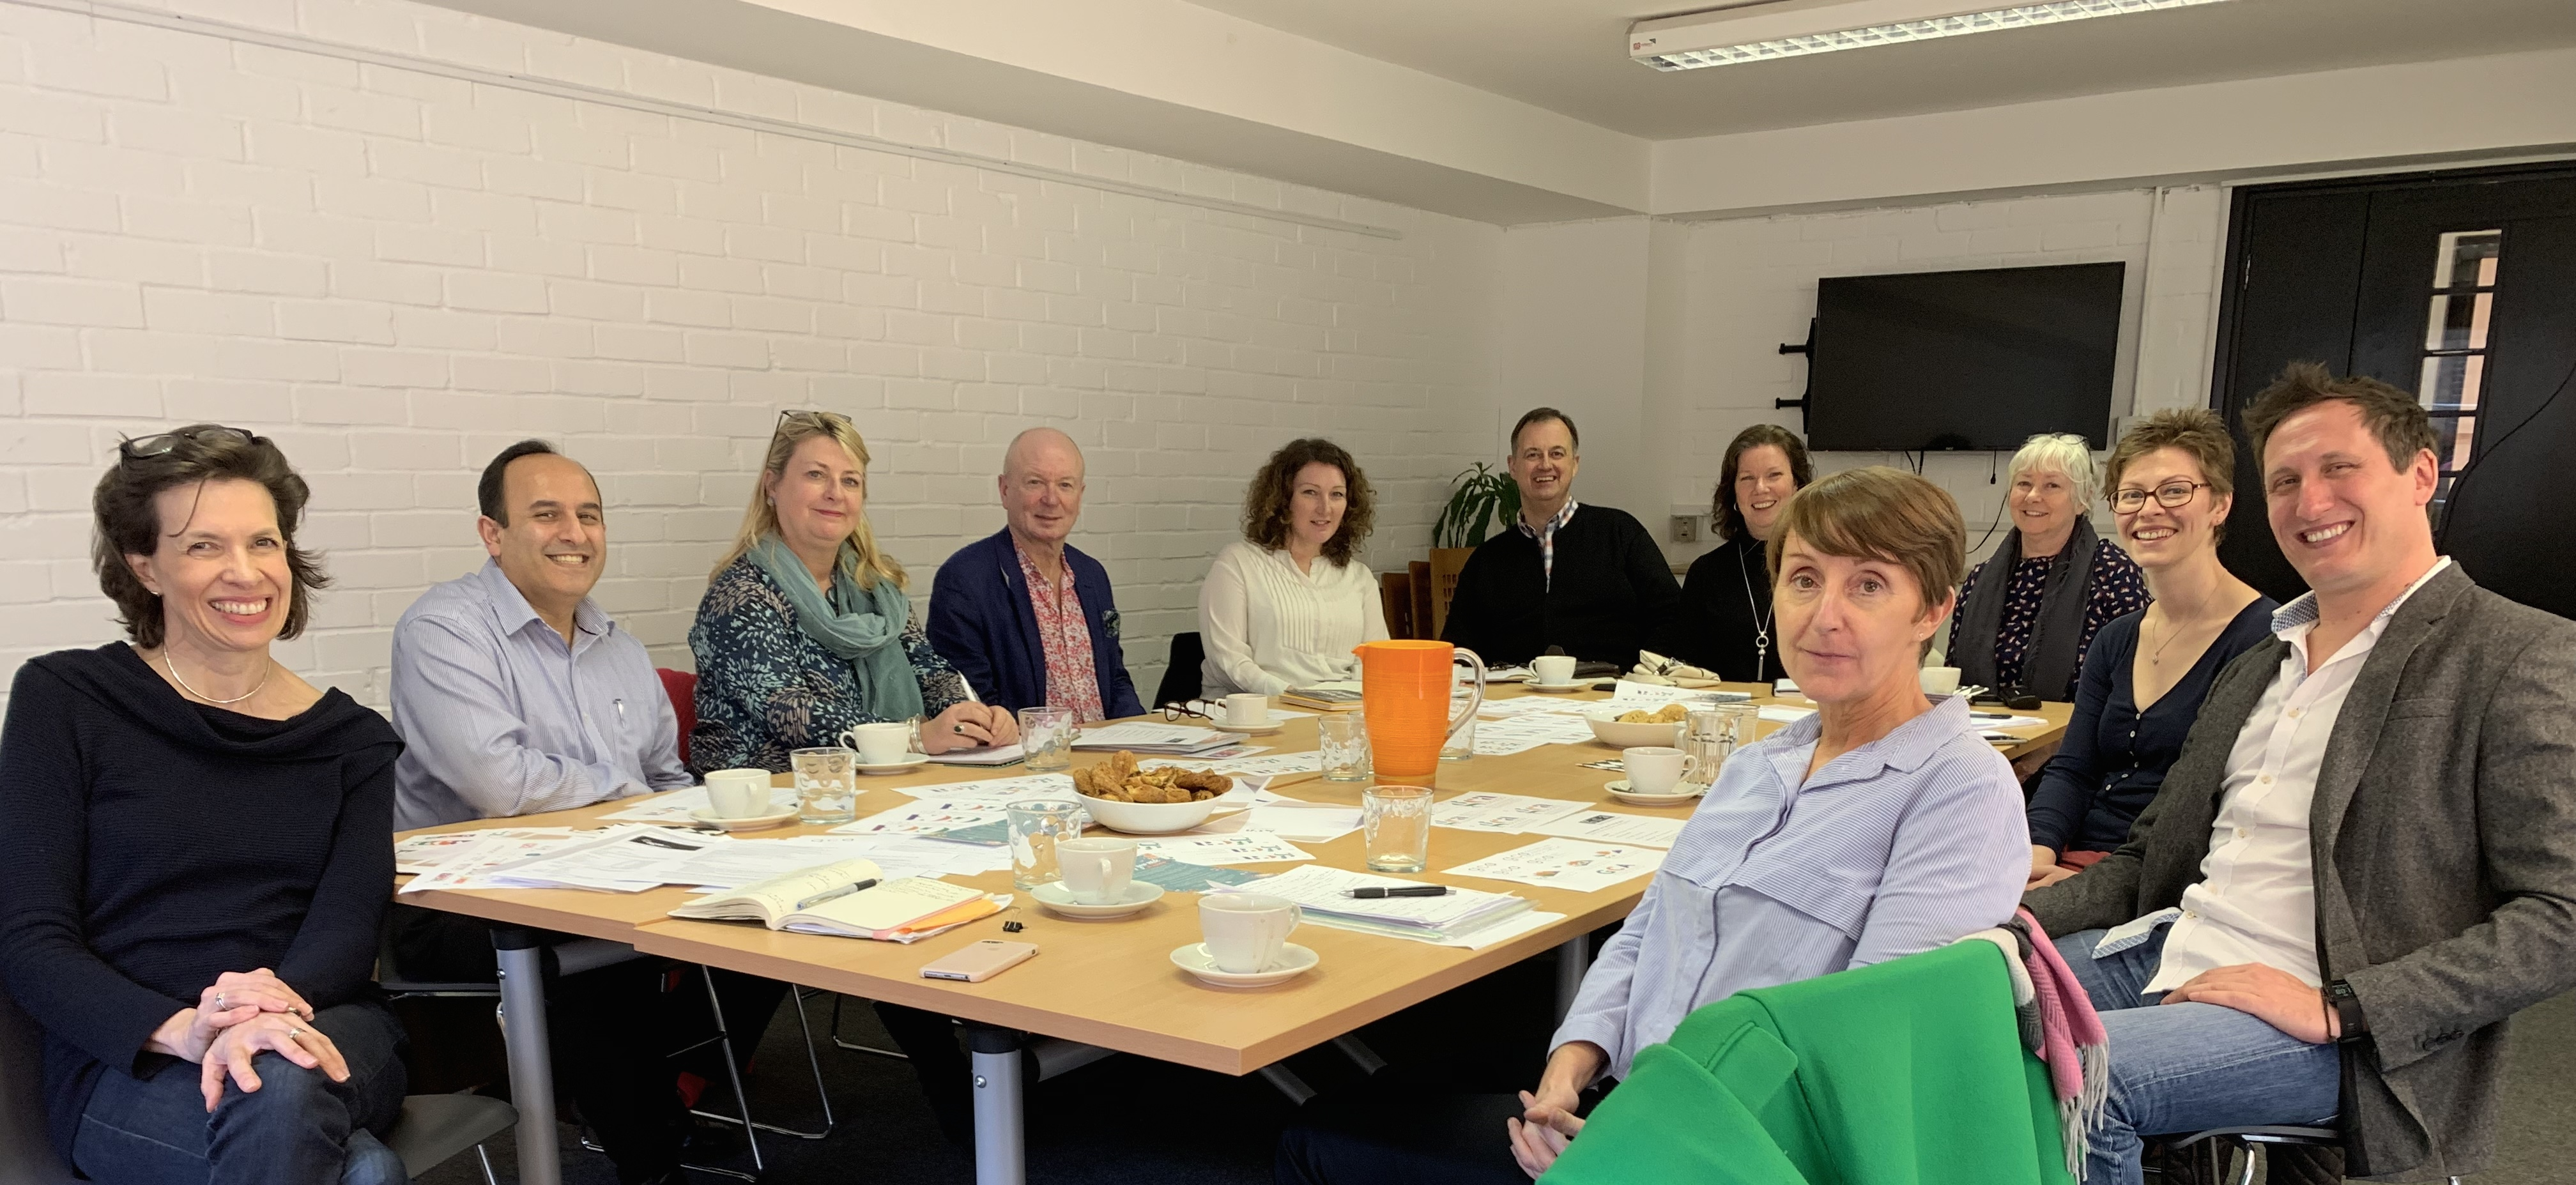 Above: The recent GCA Council meeting at which the final vote for the new logo was counted. (Left-right clockwise) Amanda Fergusson (GCA), Raj Arora (Davora), Jakki Brown (PG), Warren Lomax (PG), Sarah-Jane Porter (Moonpig), Paul Woodmansterne (Woodmansterne), Amanda Del Prete (Hallmark), Marion Hancock (Art Cards Ireland), Lisa Shoesmith (Really Good/Soul), Jeremy Corner (Blue Eyed Sun) and GCA president Ceri Stirland (UKG).